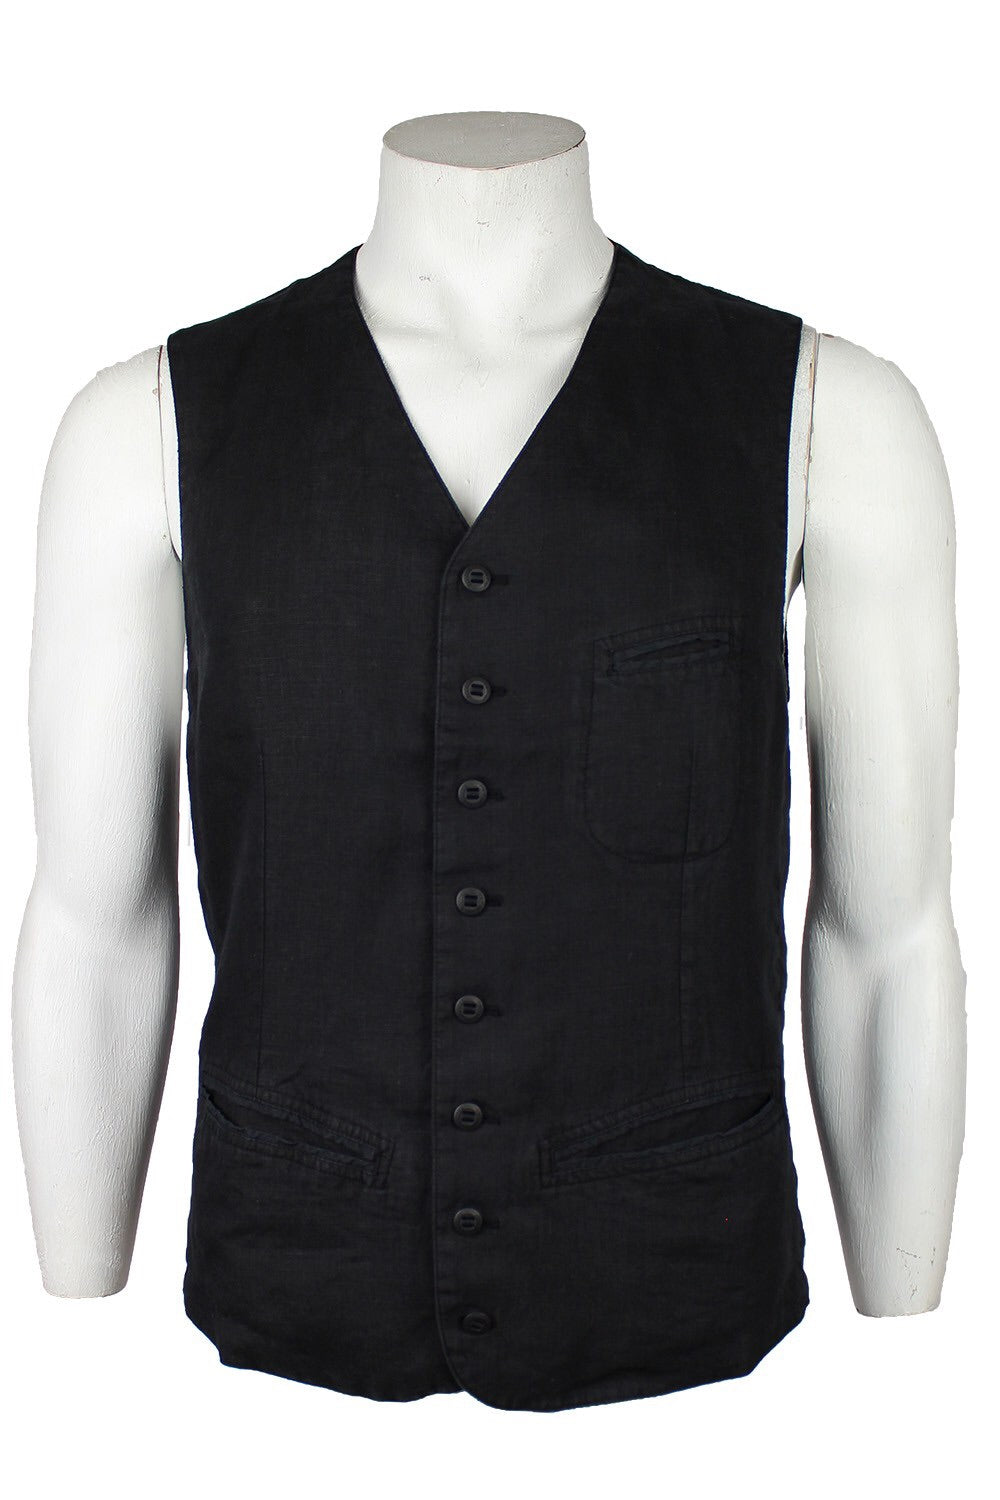 Hannes Roether Black Linen Vest